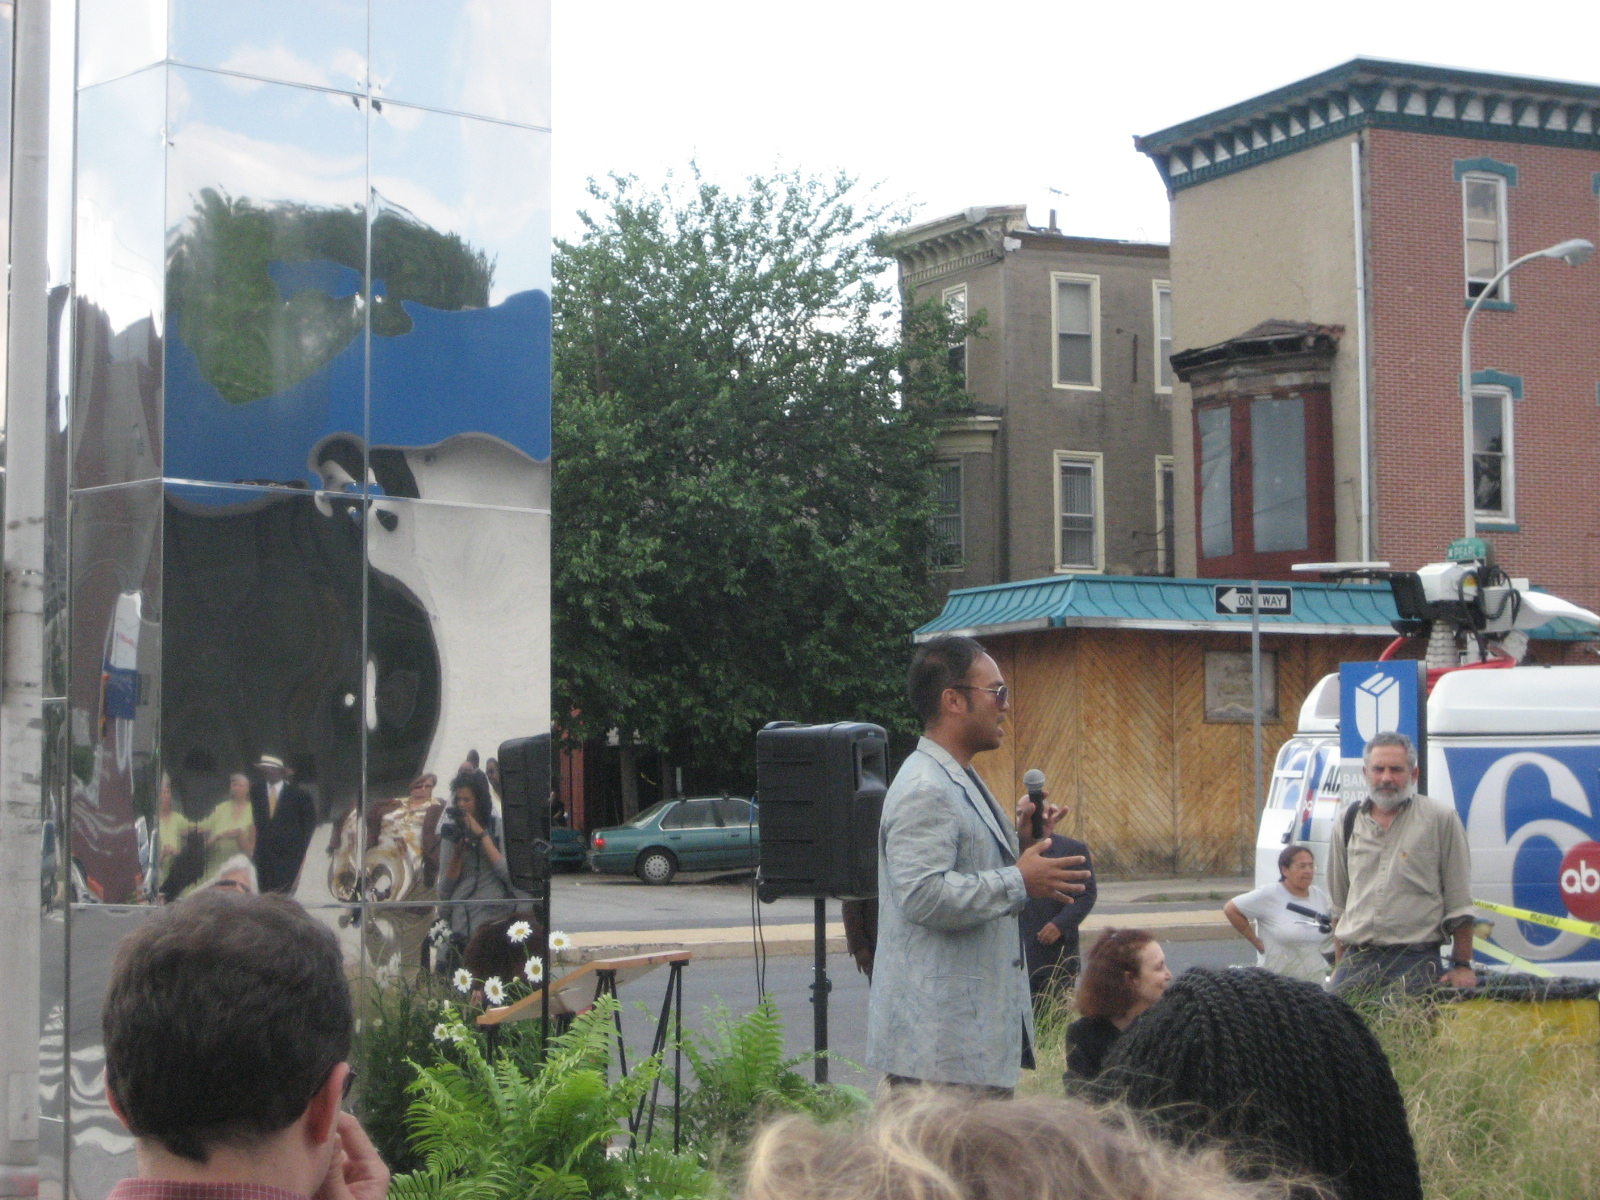 Artist Jeffrey Manuel explains to neighbors in Powelton Village the creative process behind the new sculpture.